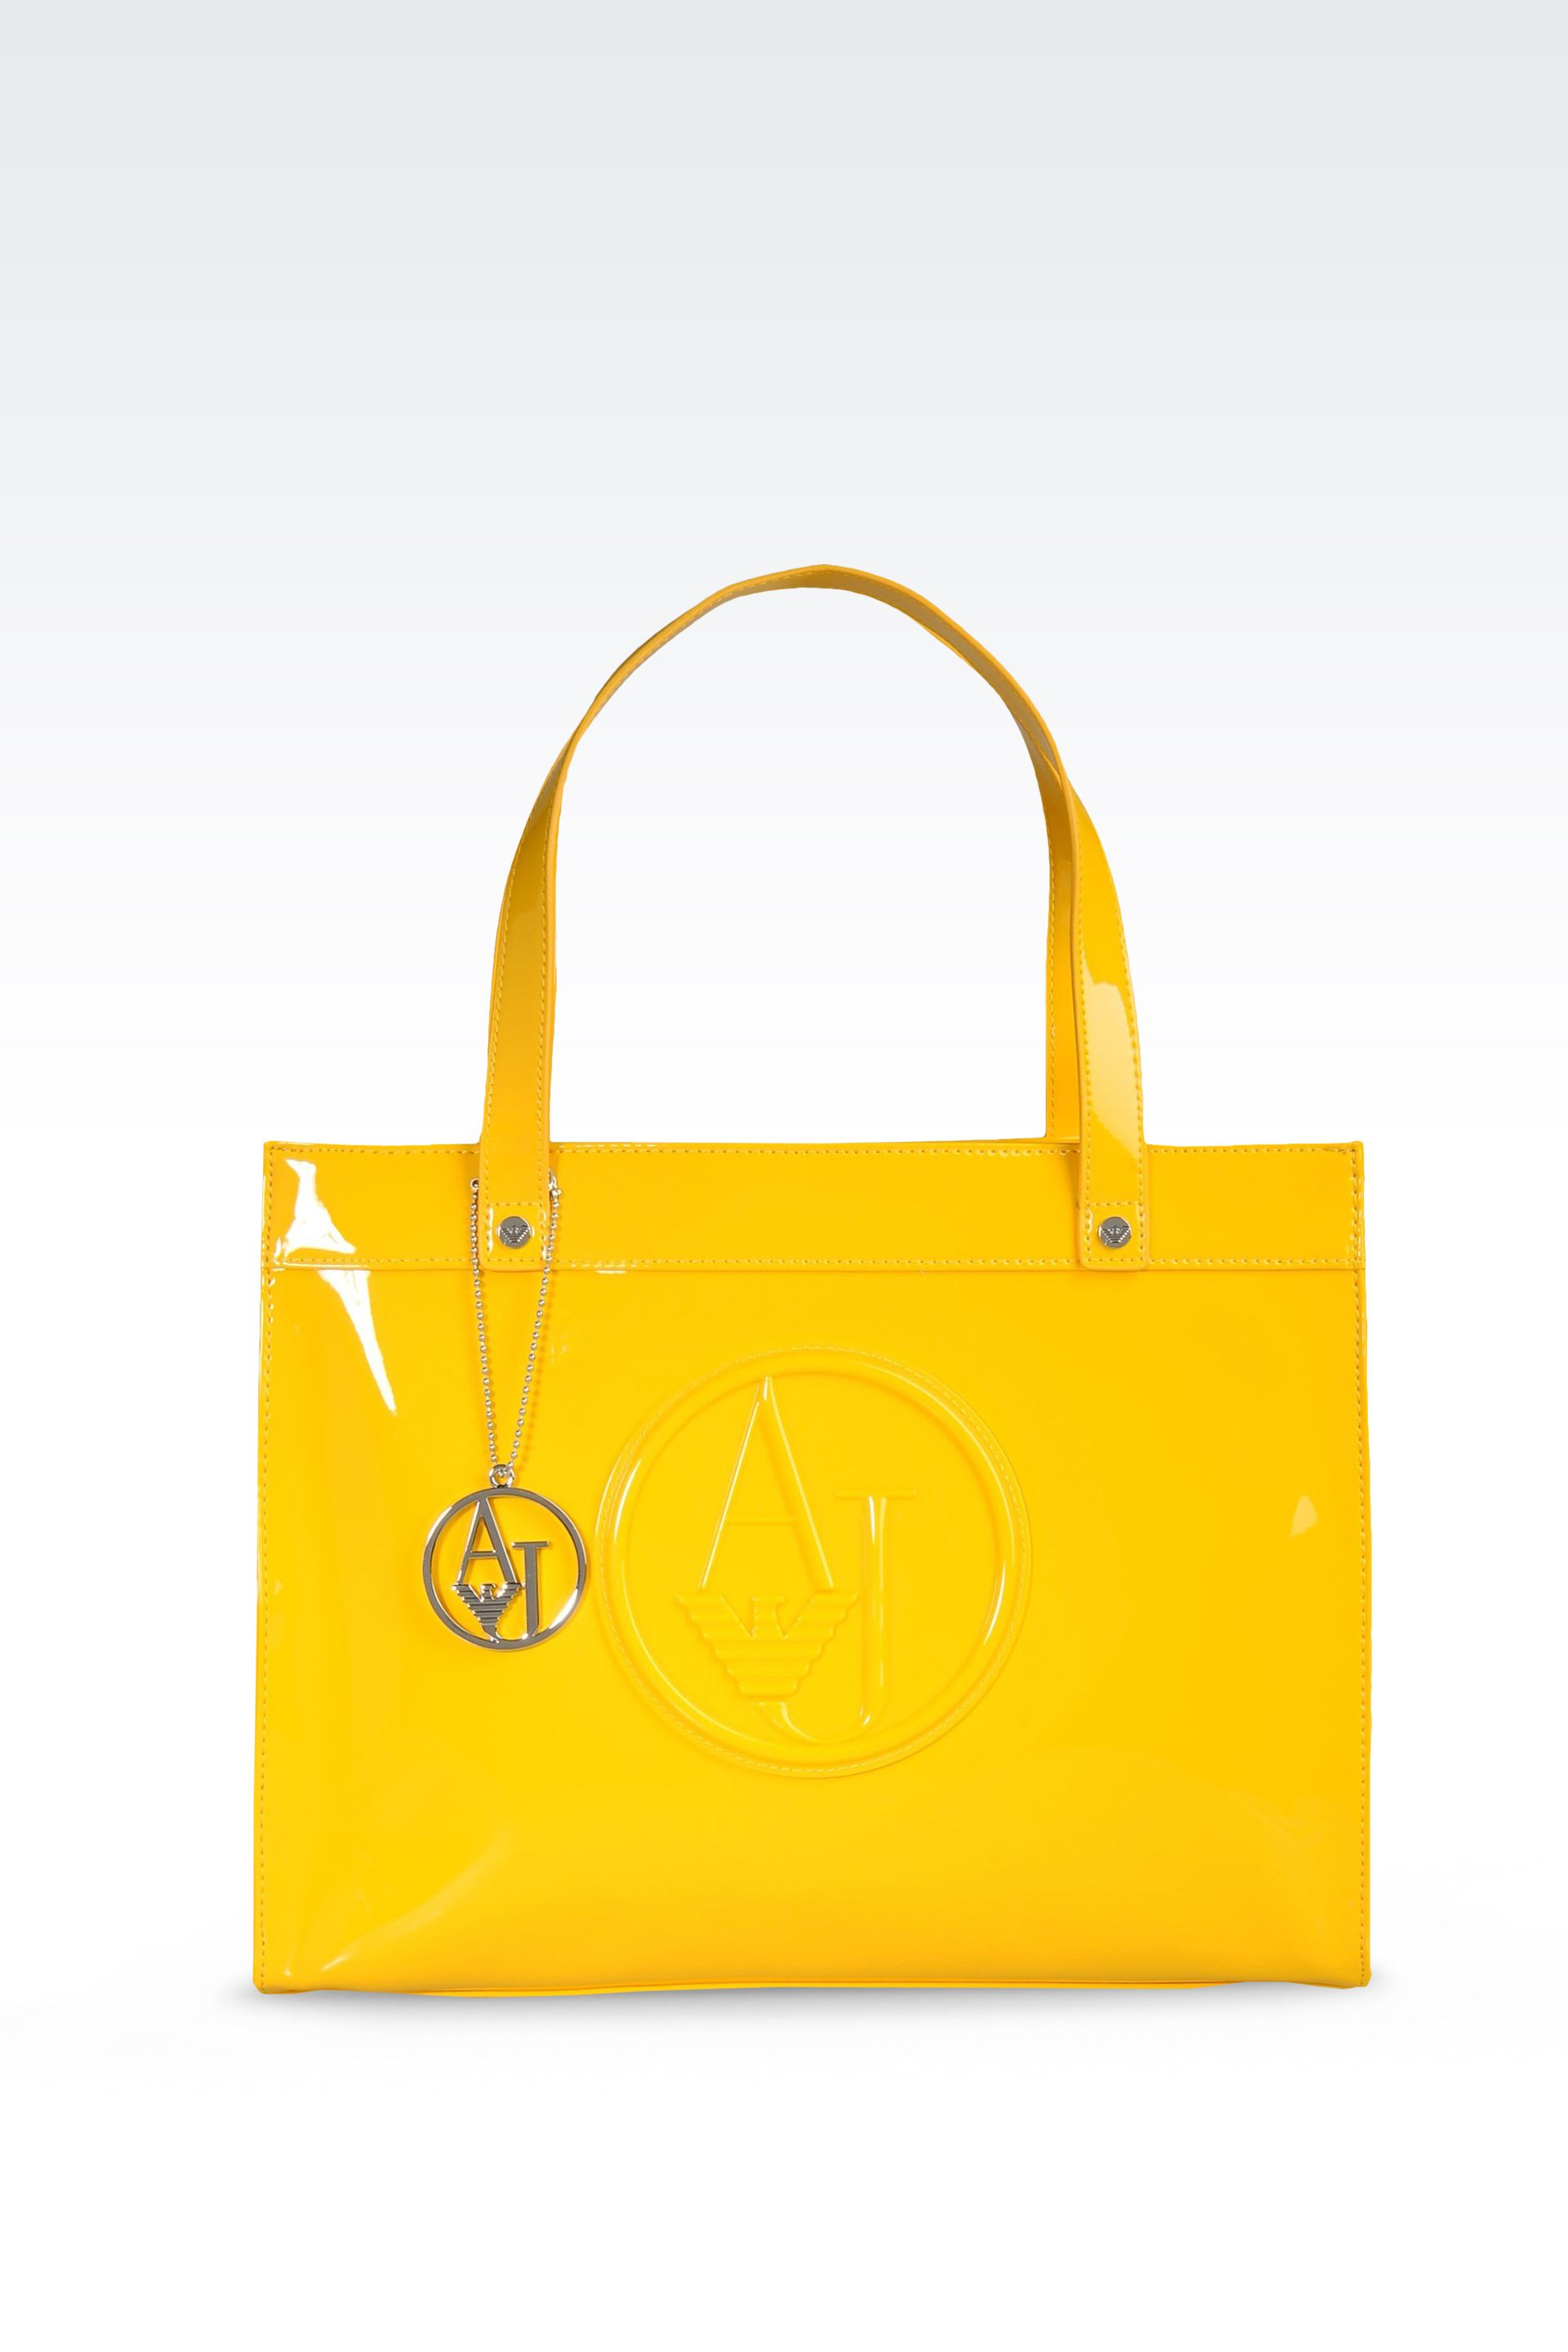 Lyst - Armani Jeans Eco Patent Leather Shopping Bag with Charms in ... 039a102a6060f